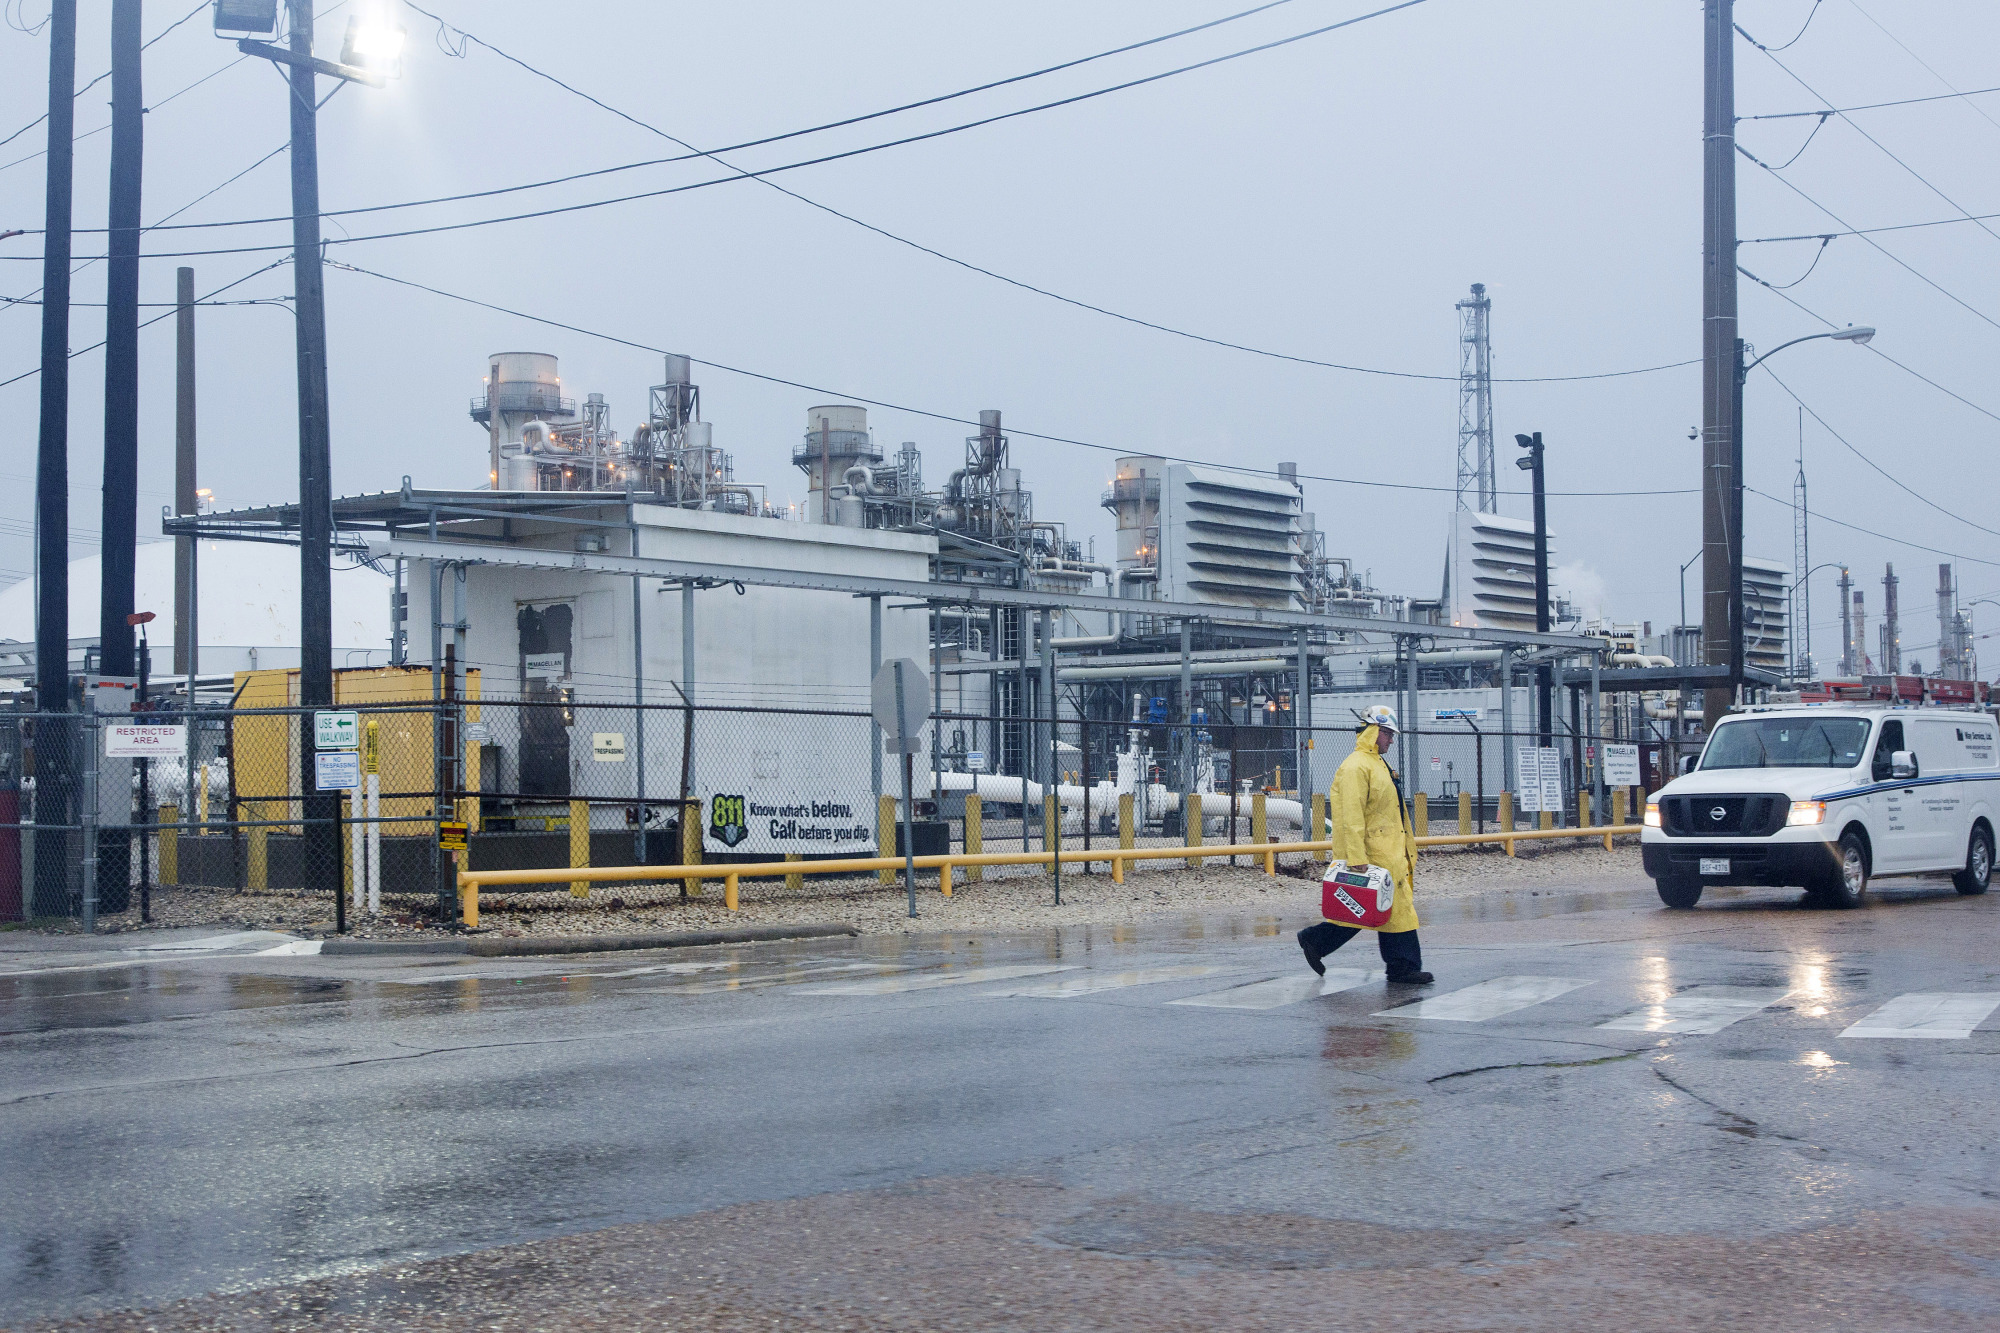 A worker wears rain gear while passing in front of the Marathon Petroleum Corp. refinery ahead of Hurricane Harvey in Texas City, Texas, U.S. Photographer: F. Carter Smith/Bloomberg